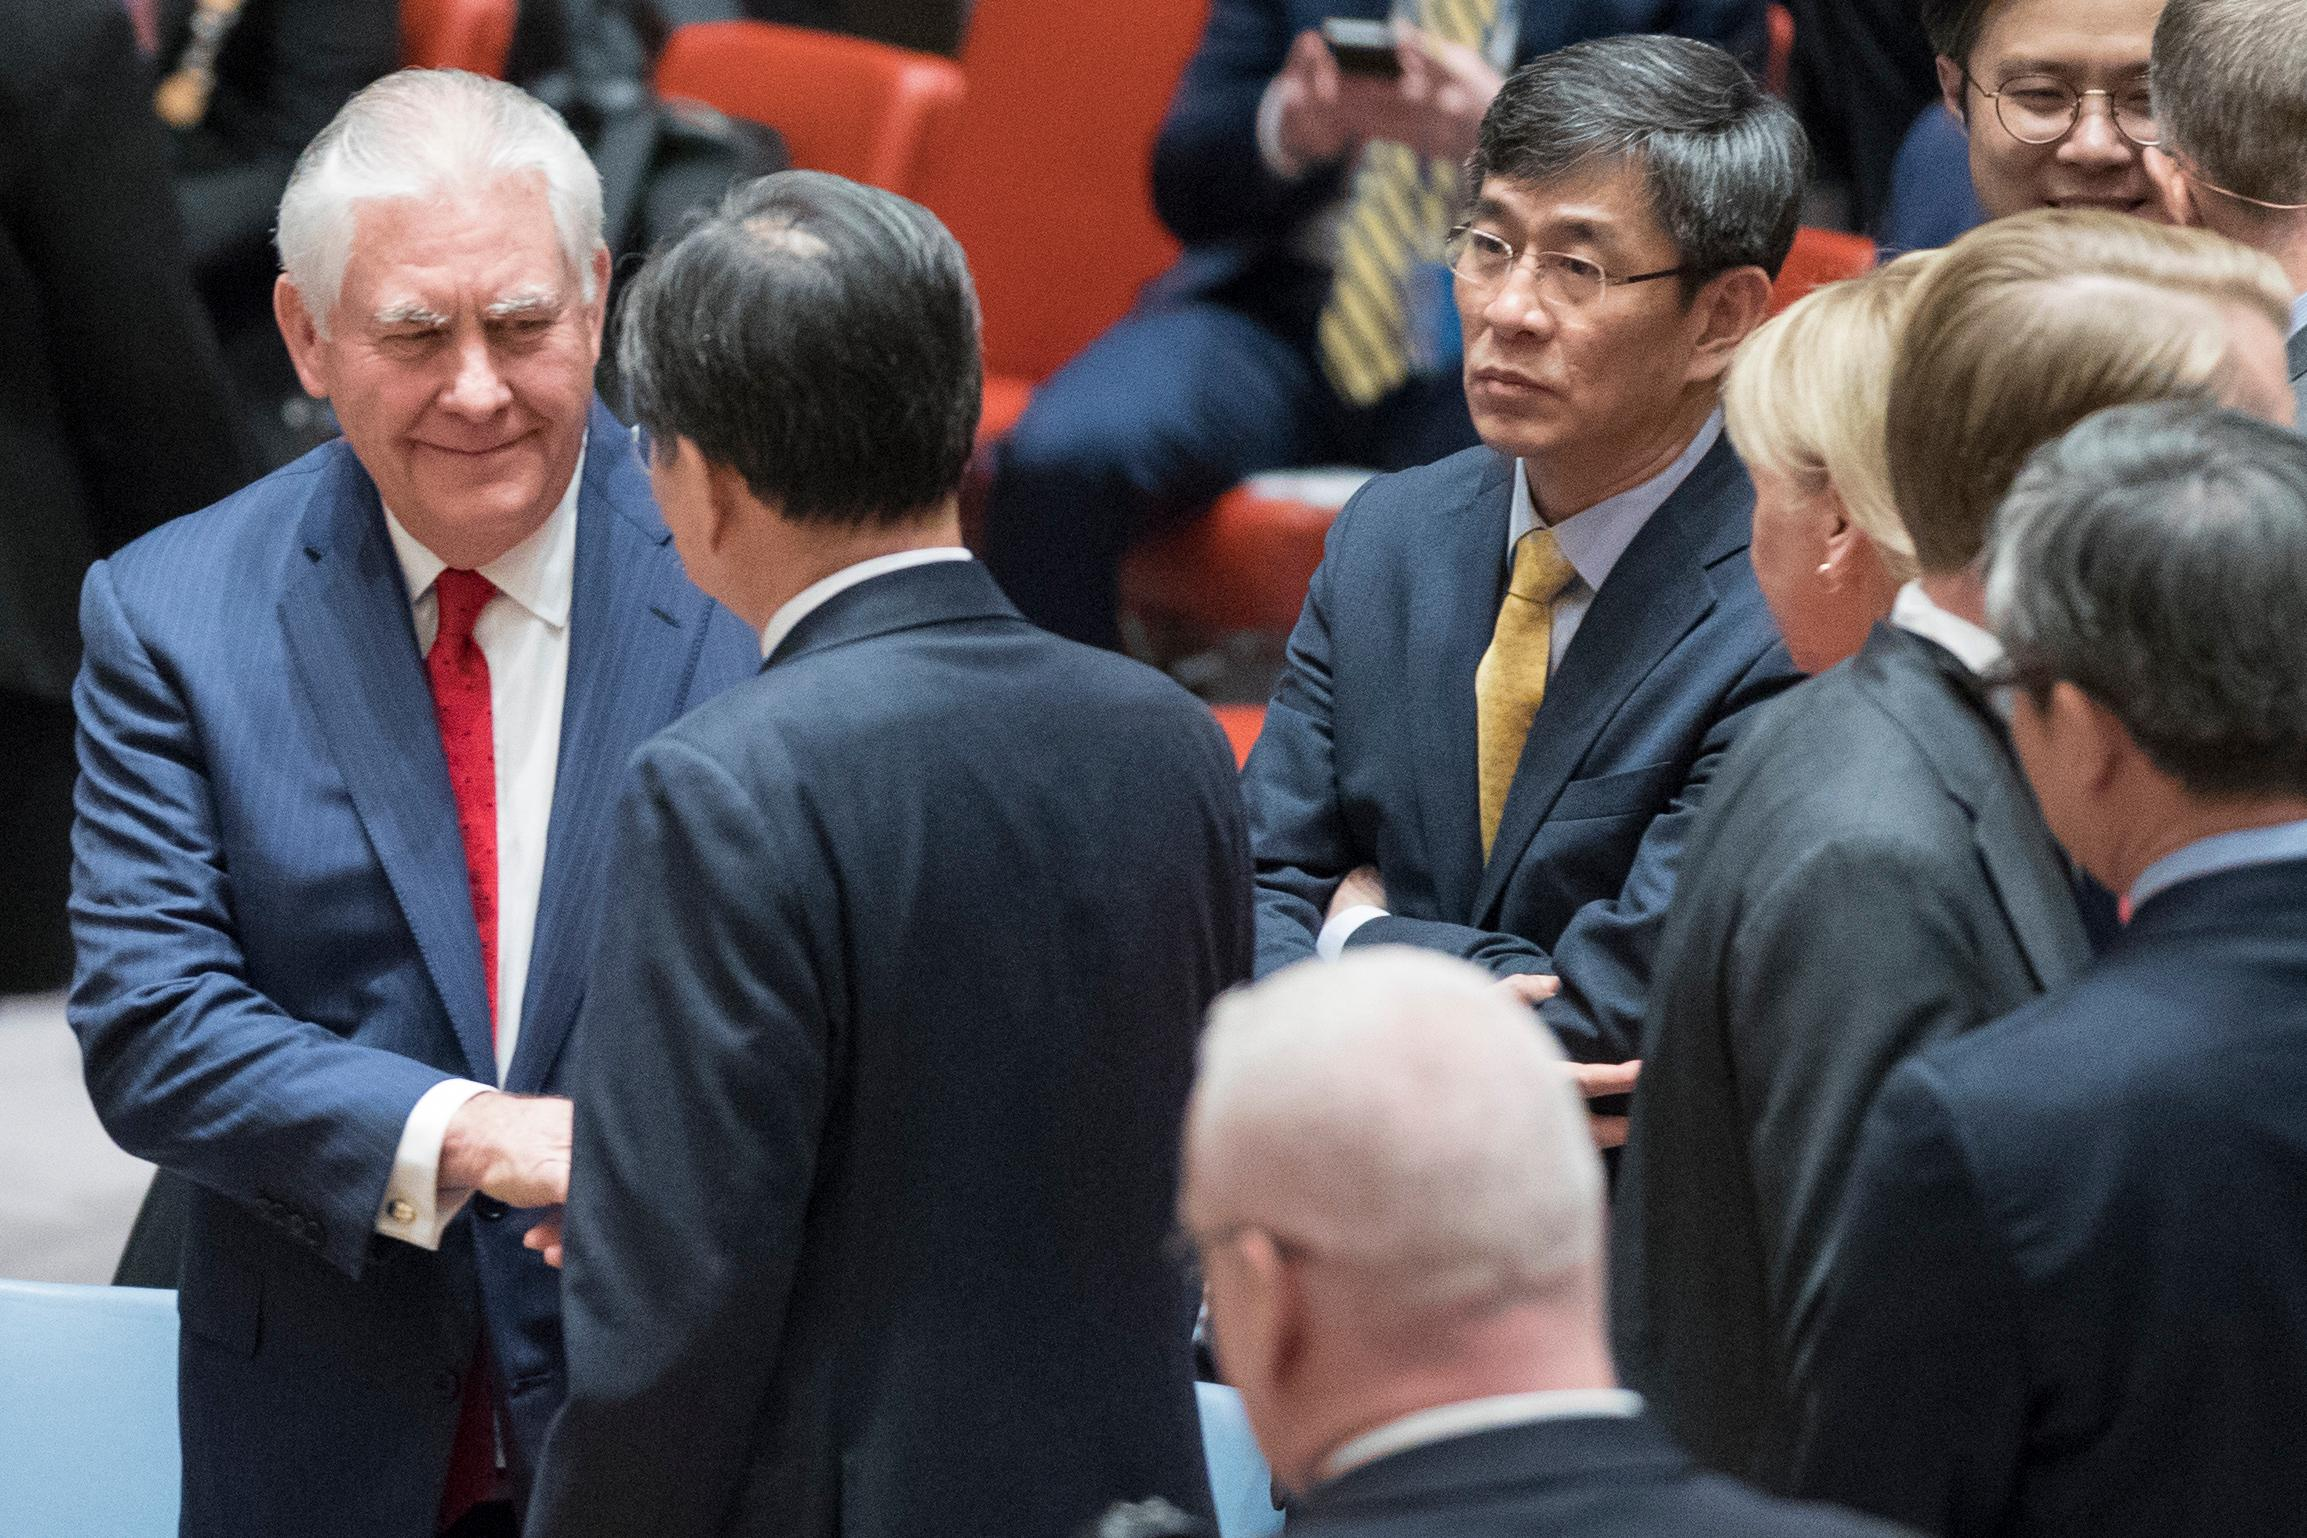 American Secretary of State Rex Tillerson, left, greets South Korean Vice Minister of Foreign Affairs Cho Hyun before the start of a high level Security Council meeting on the situation in North Korea, Friday, Dec. 15, 2017 at United Nations headquarters. (AP Photo/Mary Altaffer)